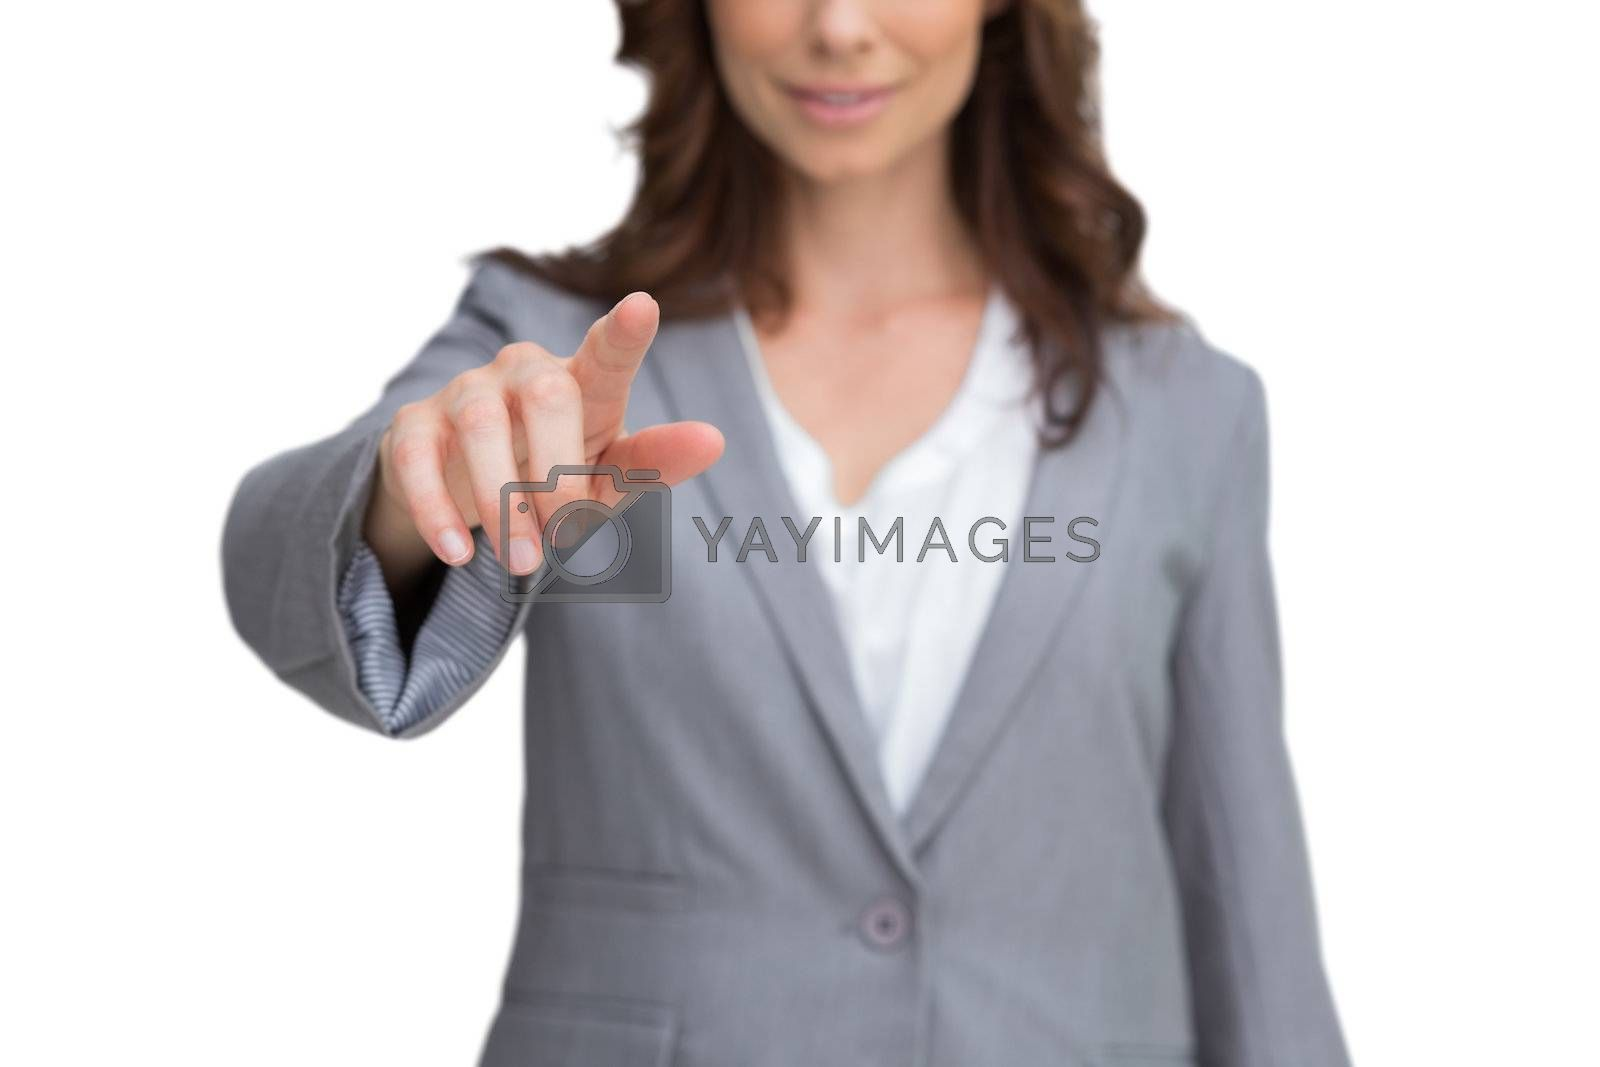 Smiling businesswoman pointing at screen by Wavebreakmedia